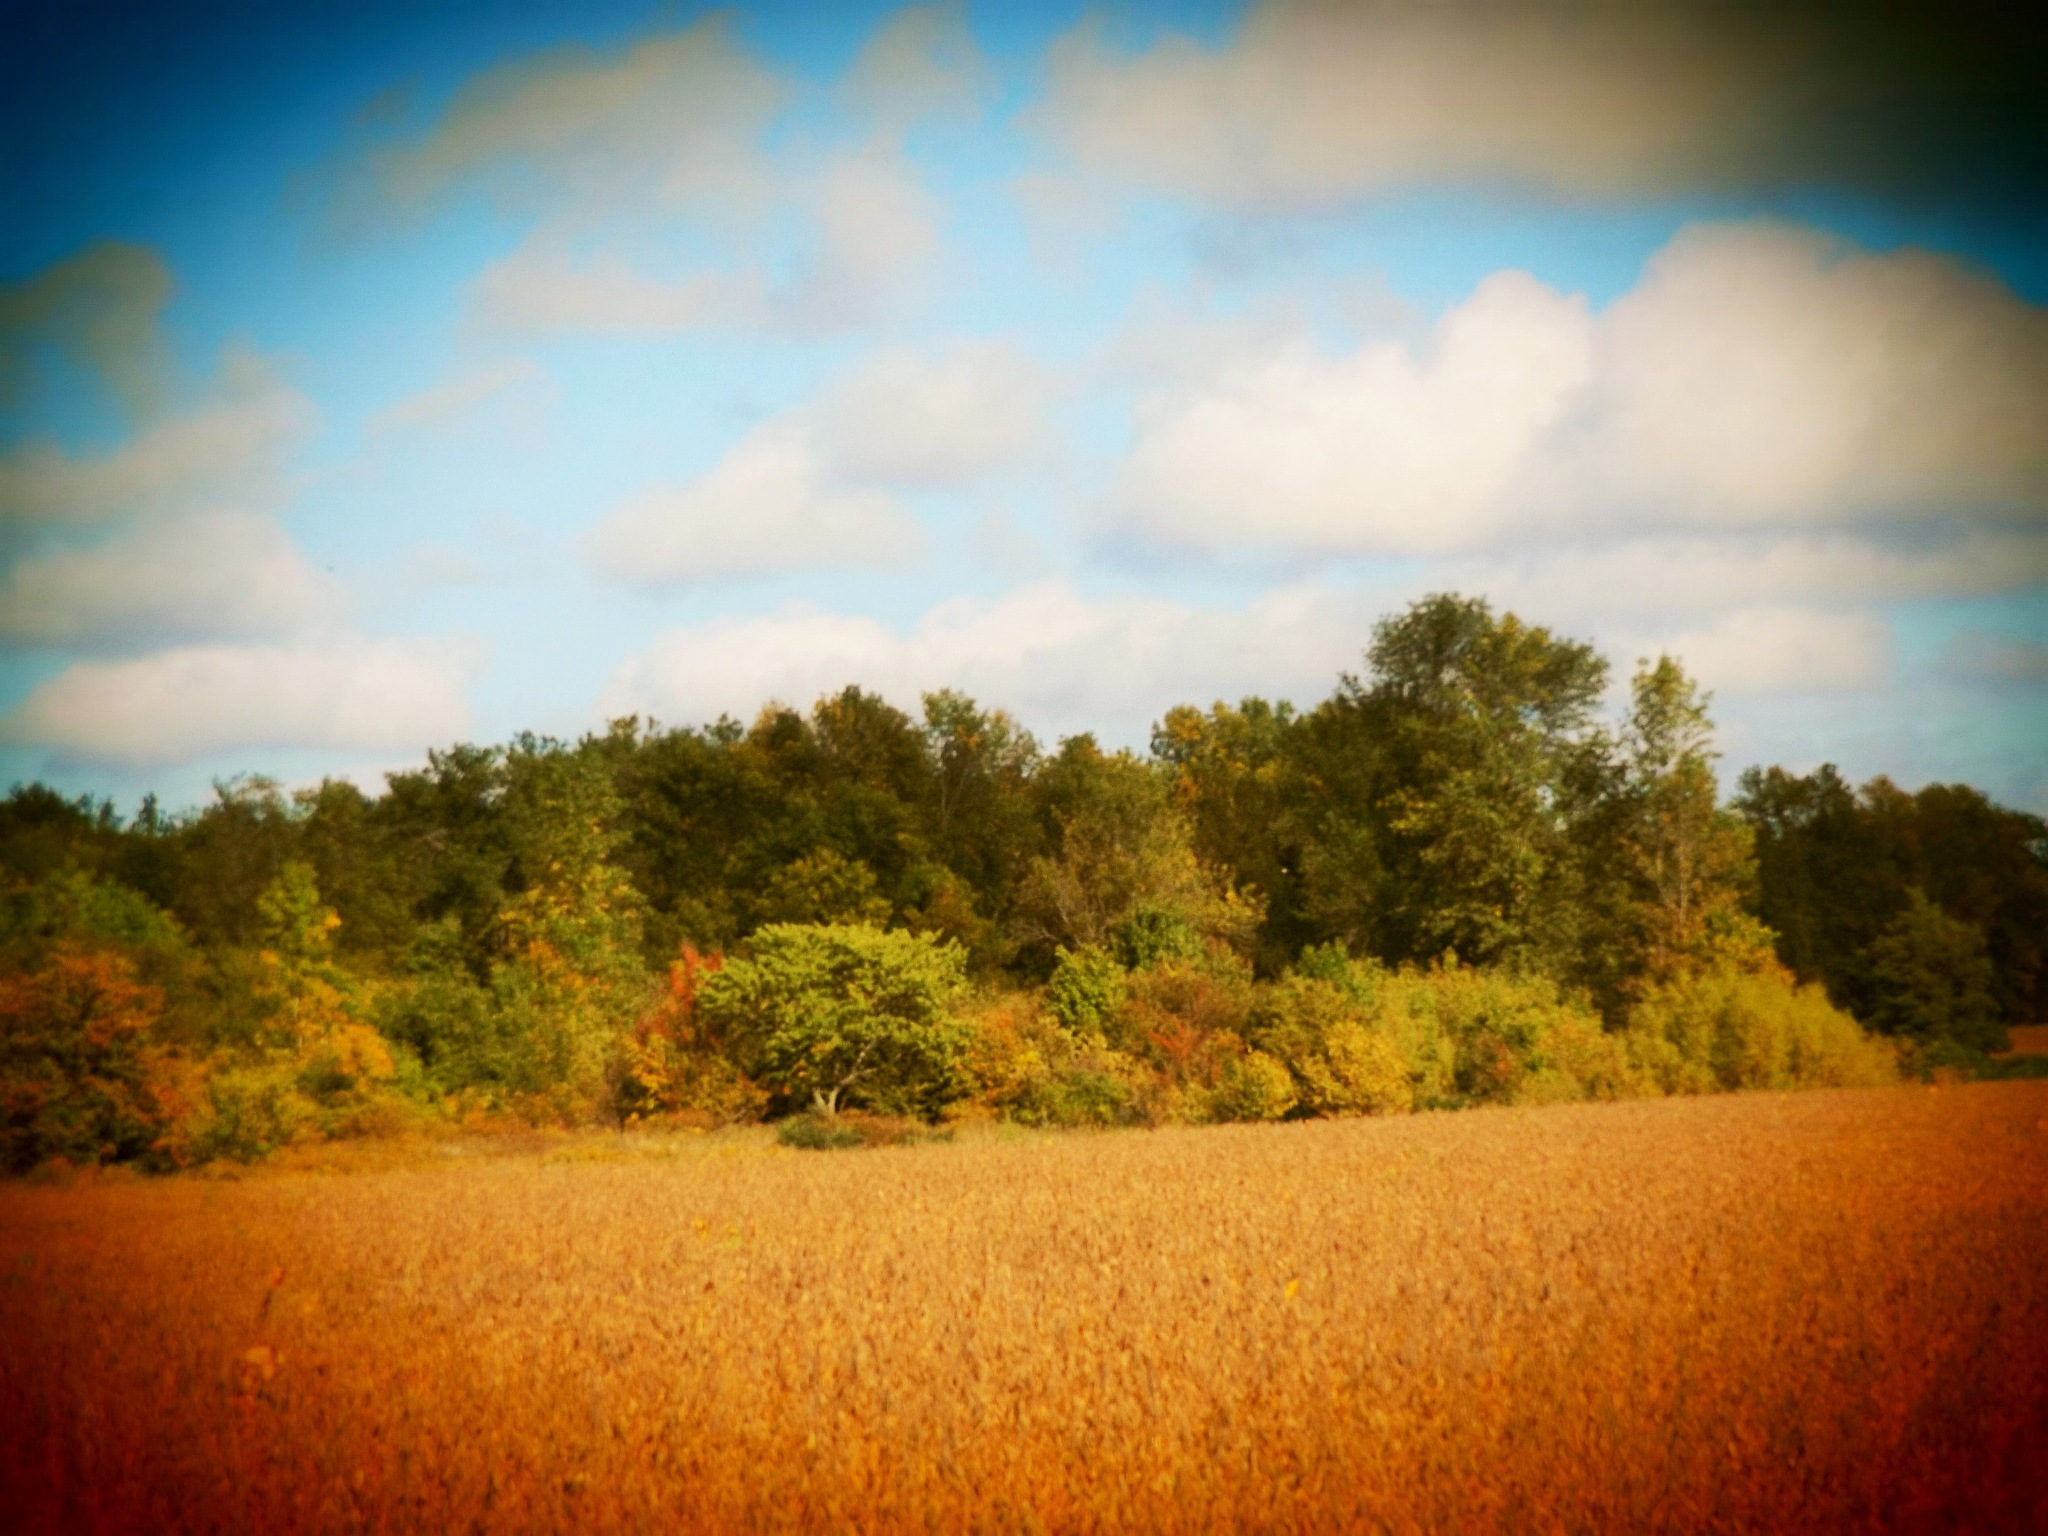 COUNTRY FIELD OF COLORS by Dawn Hoffmeister